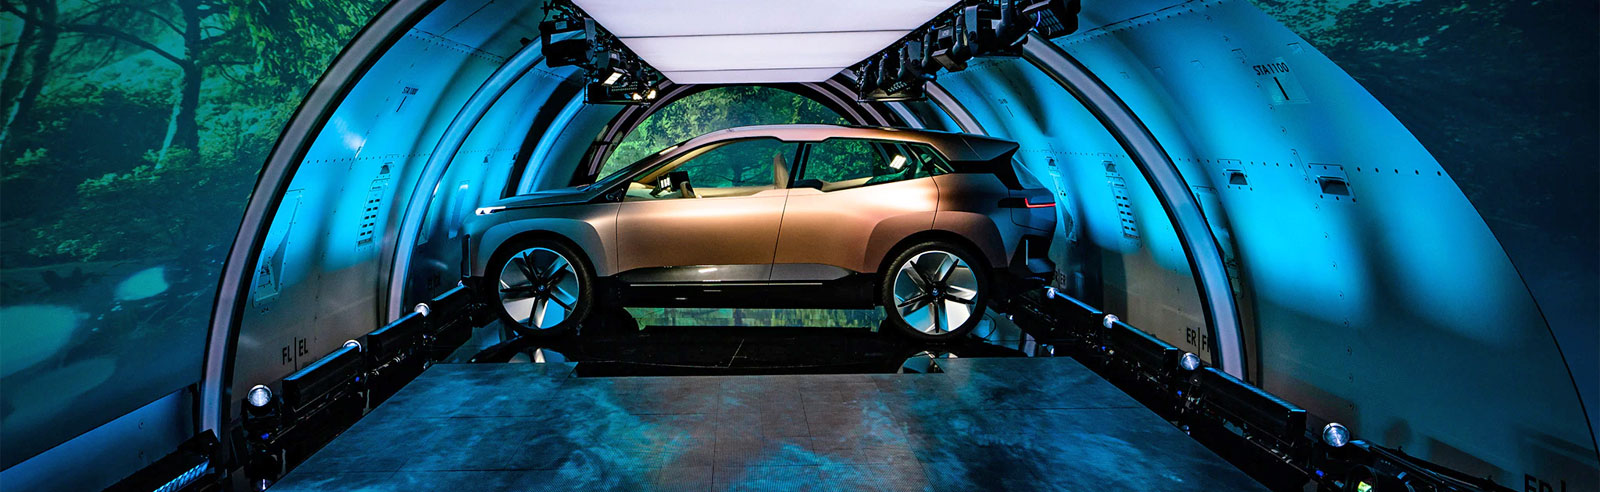 BMW iNext to have three versions, X3 will get a BEV variant, i3 will be redesigned in 2022